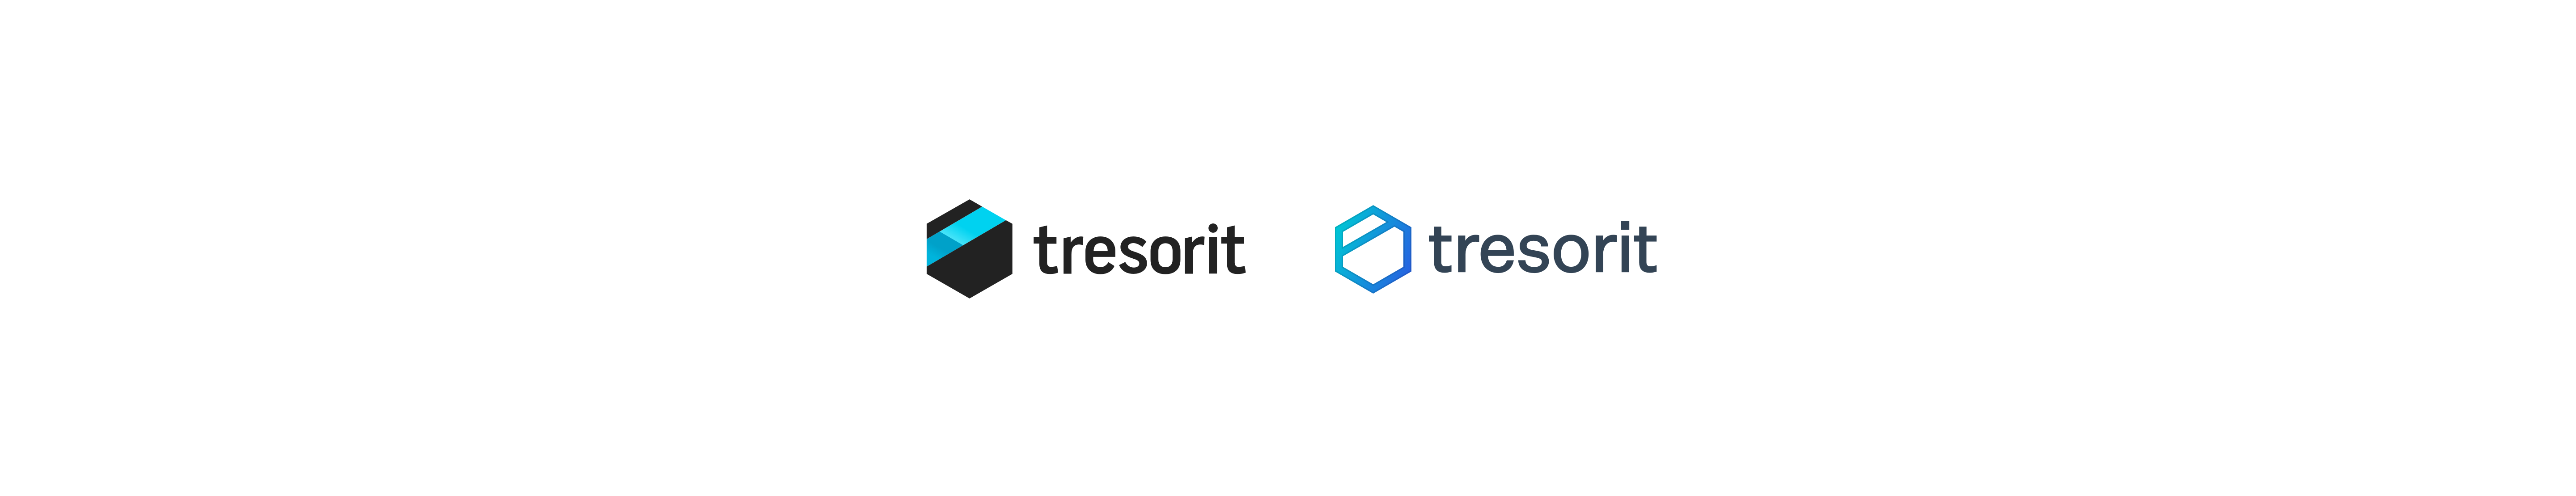 Meet our new visual identity, an even more intuitive and cleaner Tresorit